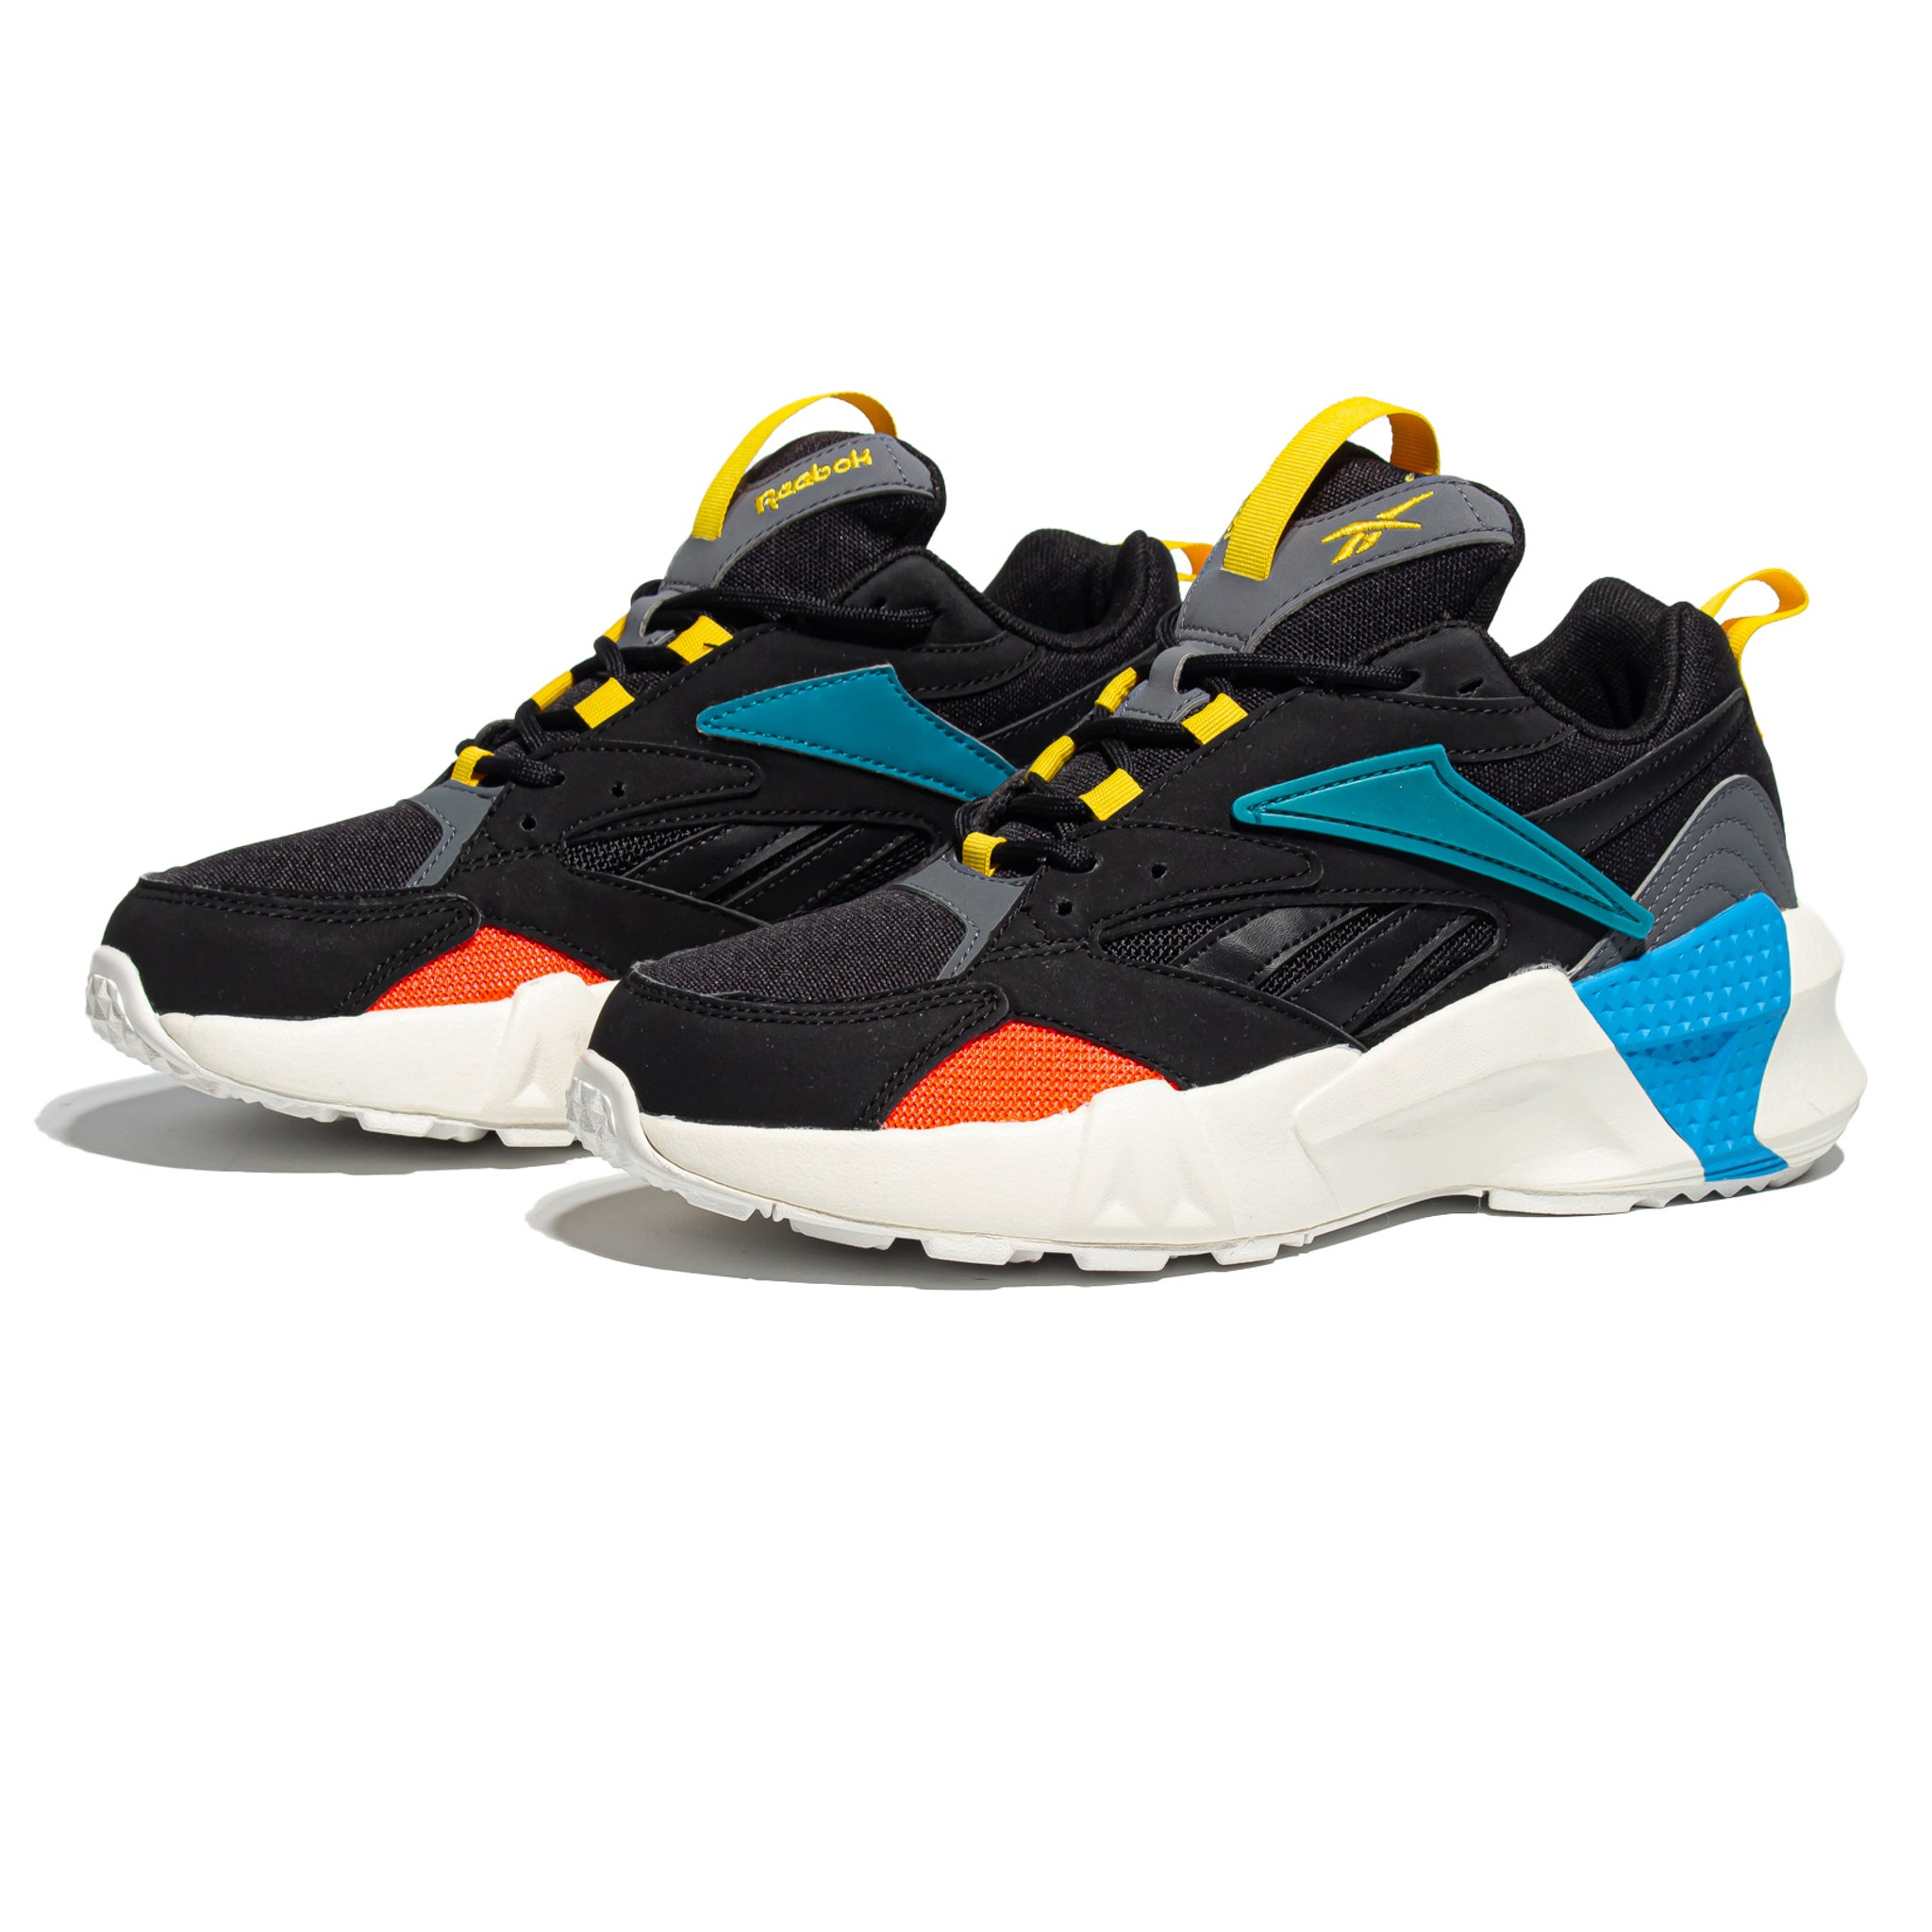 Reebok Aztrek Double NU Pops Black/Teal Gum